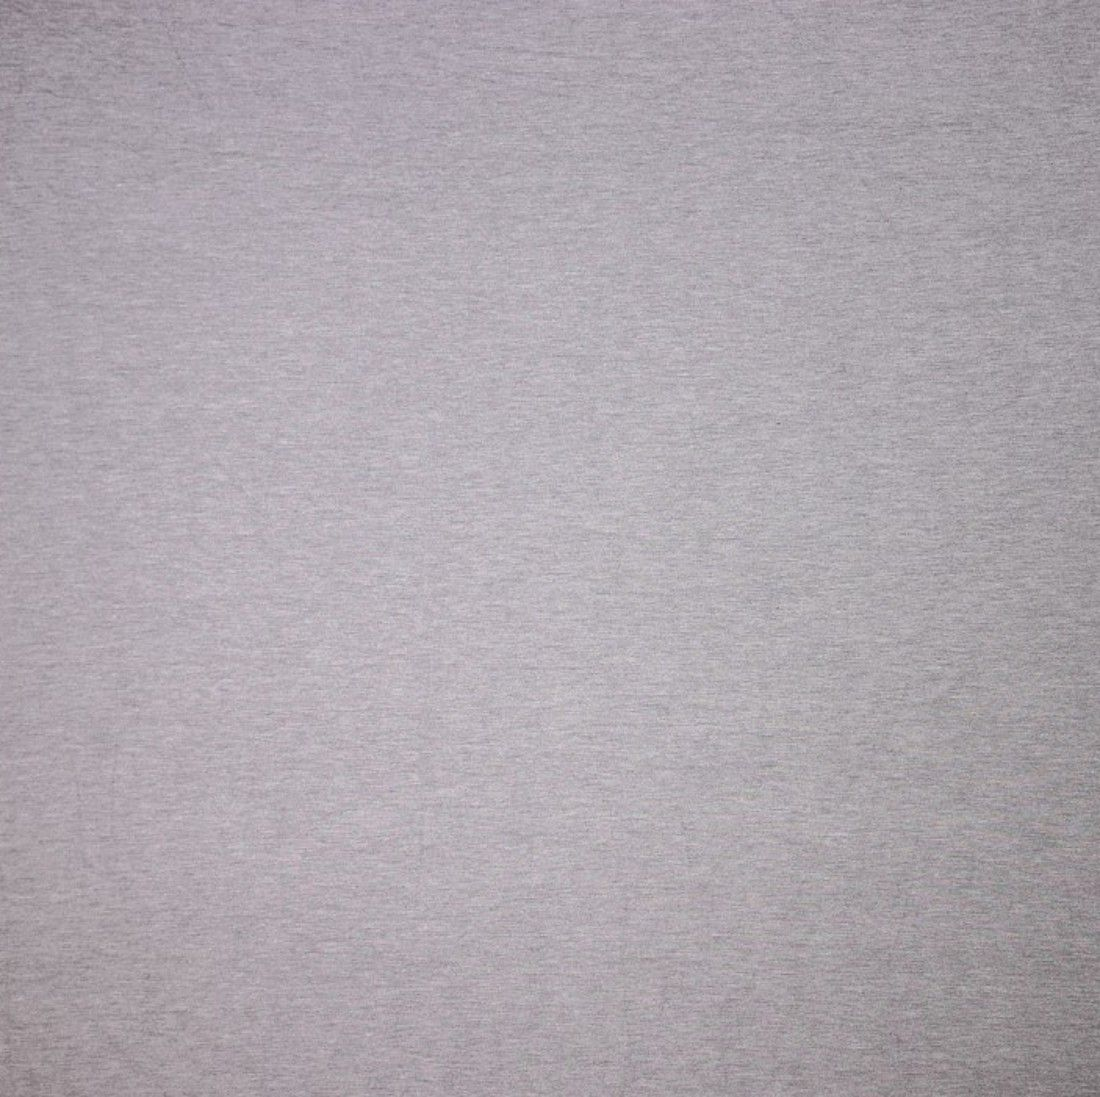 Remnant -Solid Colour Bamboo Jersey Fabric - Light Grey Melange - 1m x 160cm